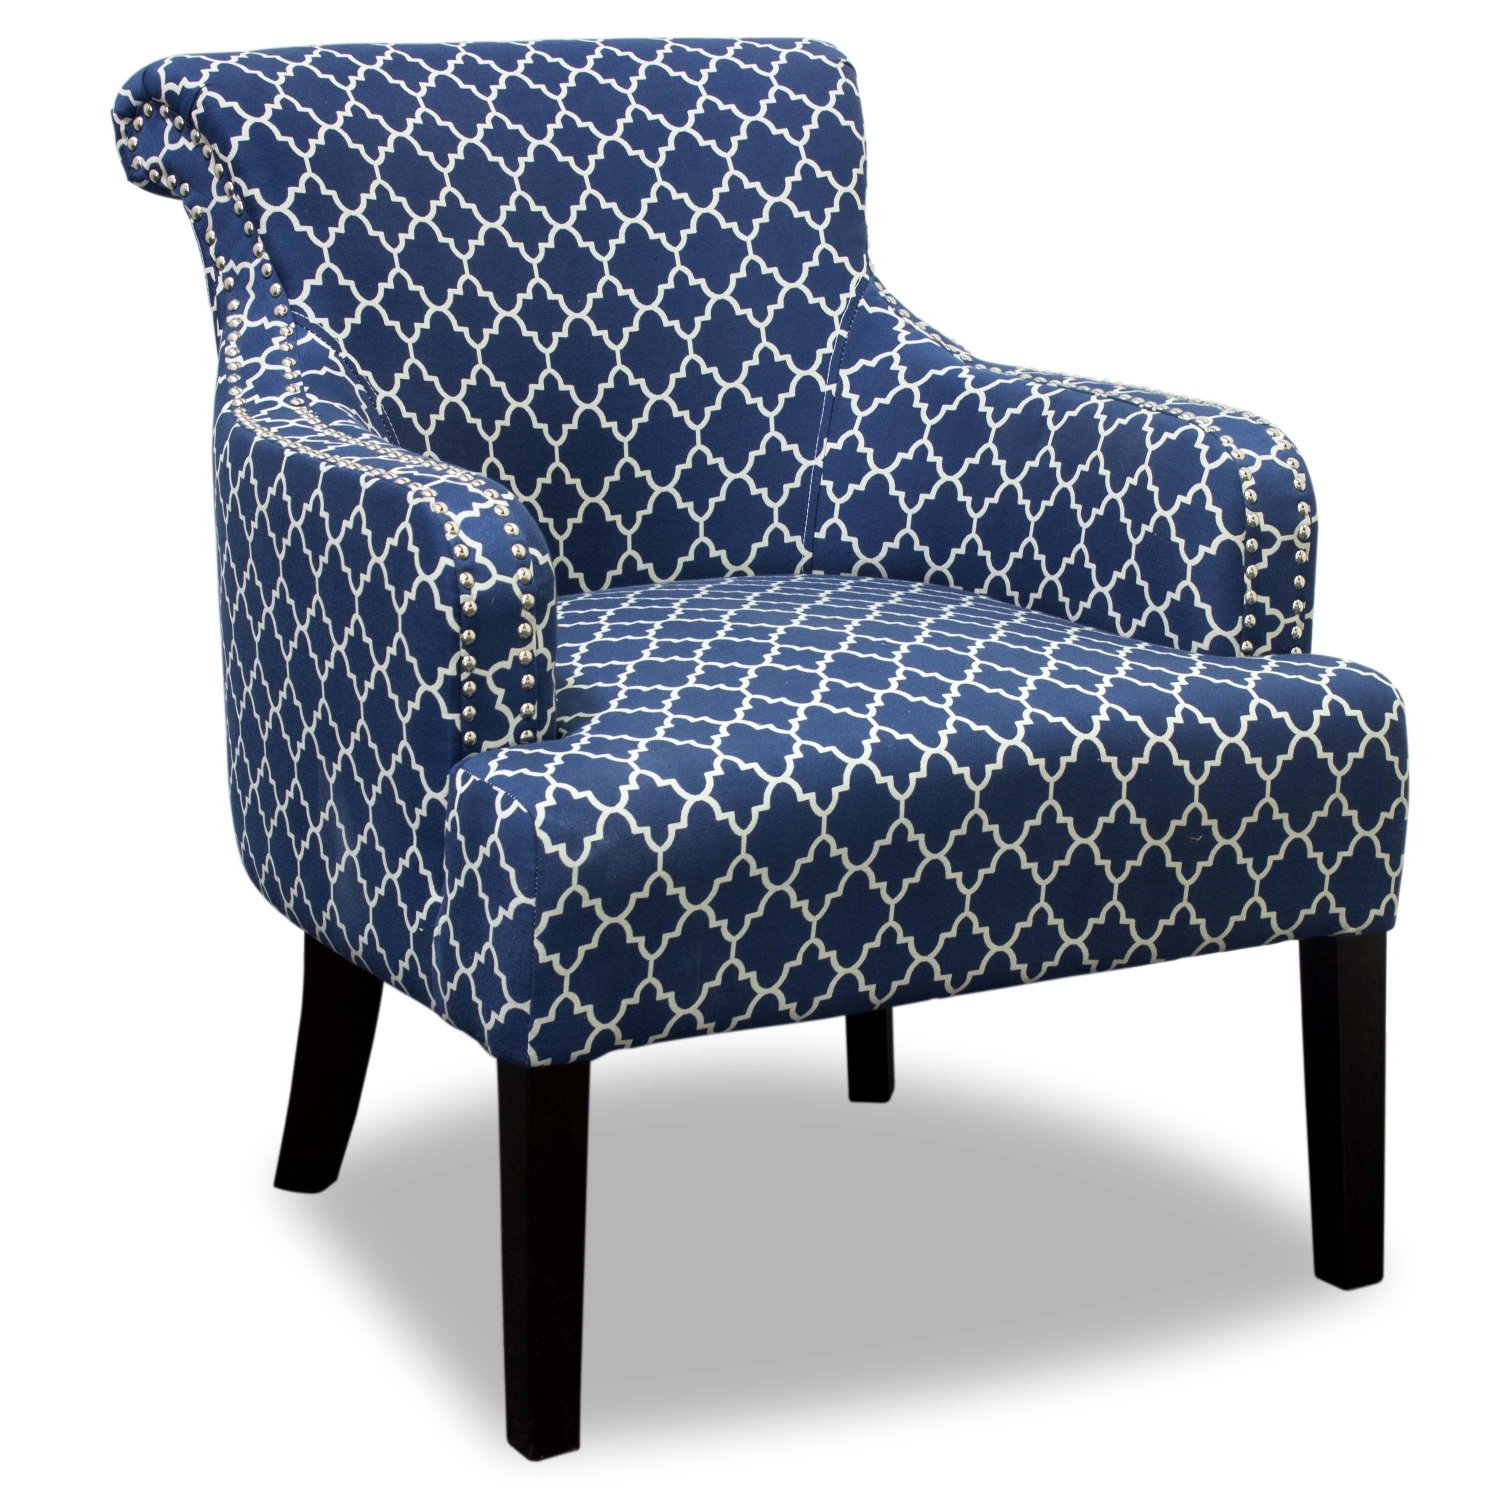 585 blue white regency living room accent chair